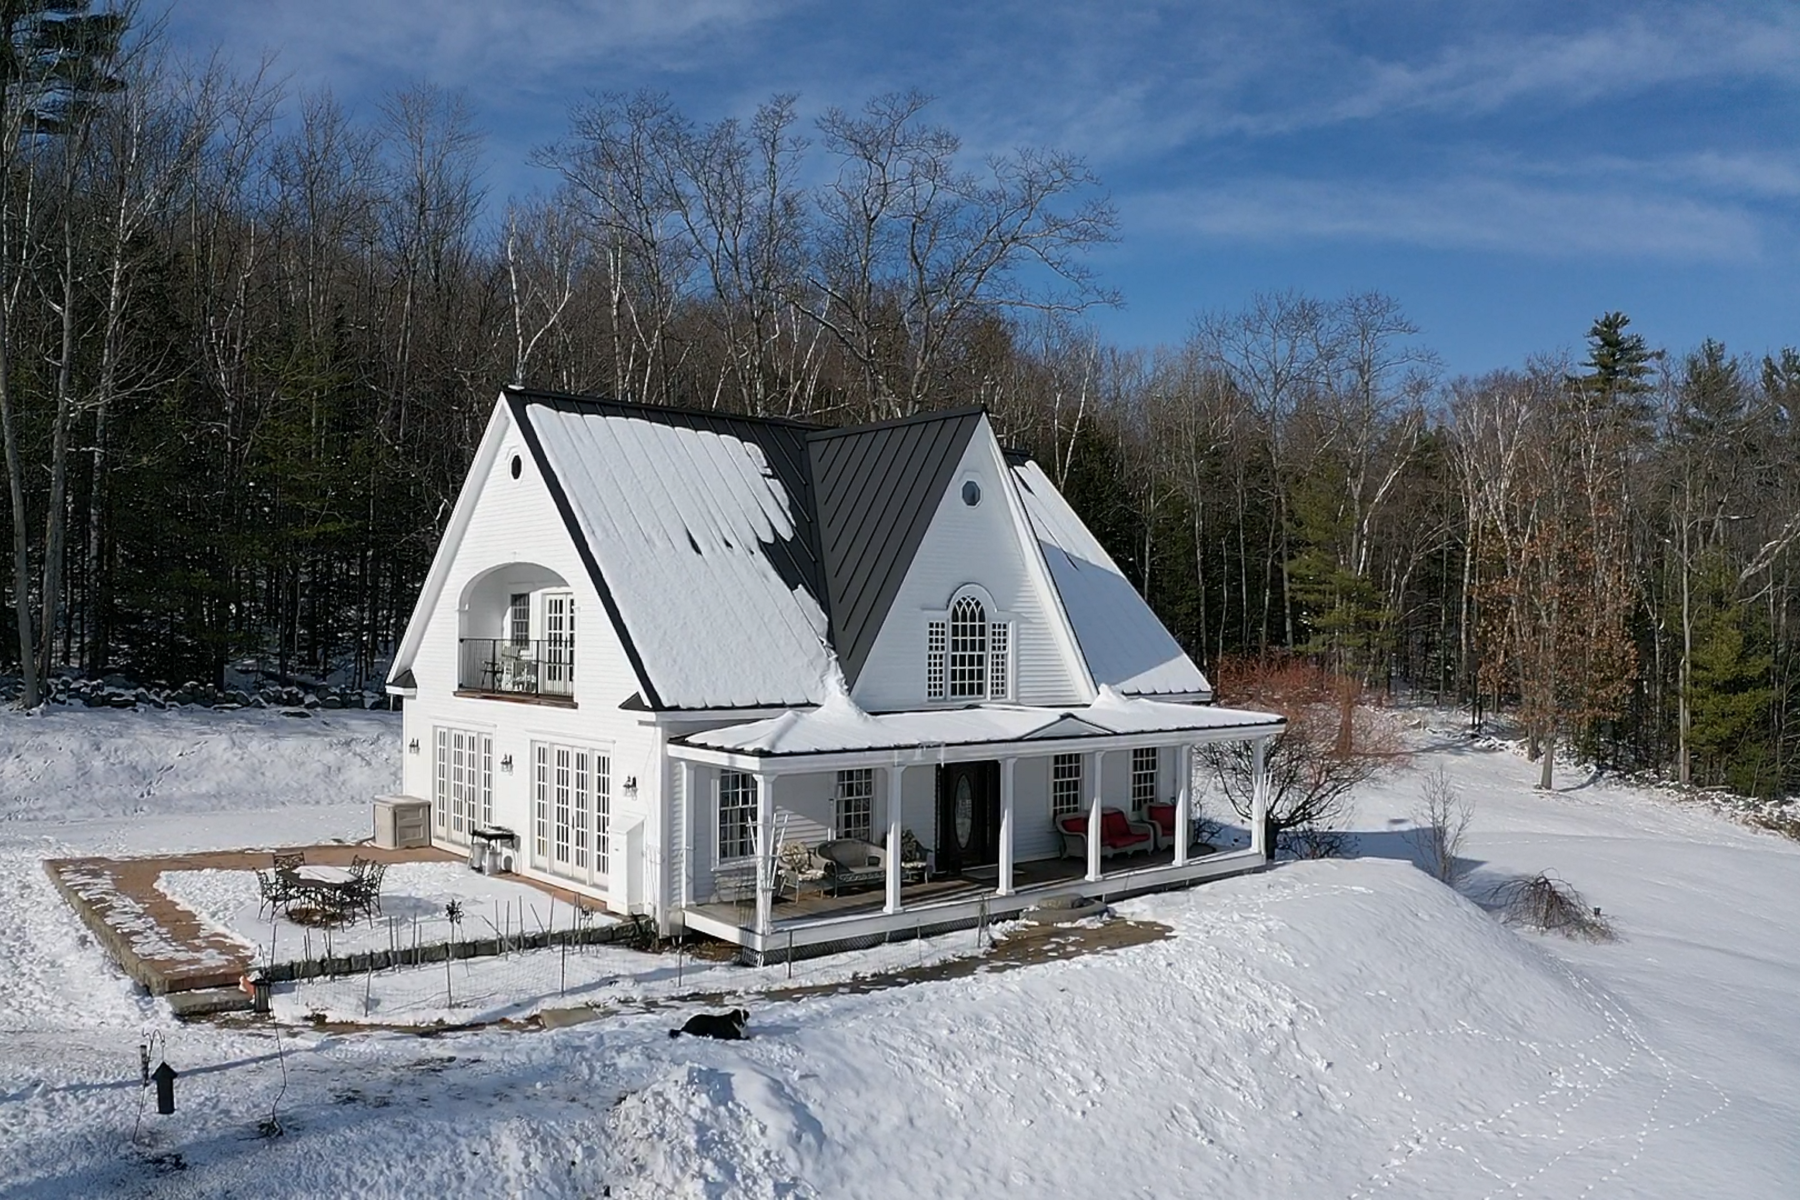 Single Family Homes for Sale at 46 Sand Hill Road Croydon, New Hampshire 03773 United States